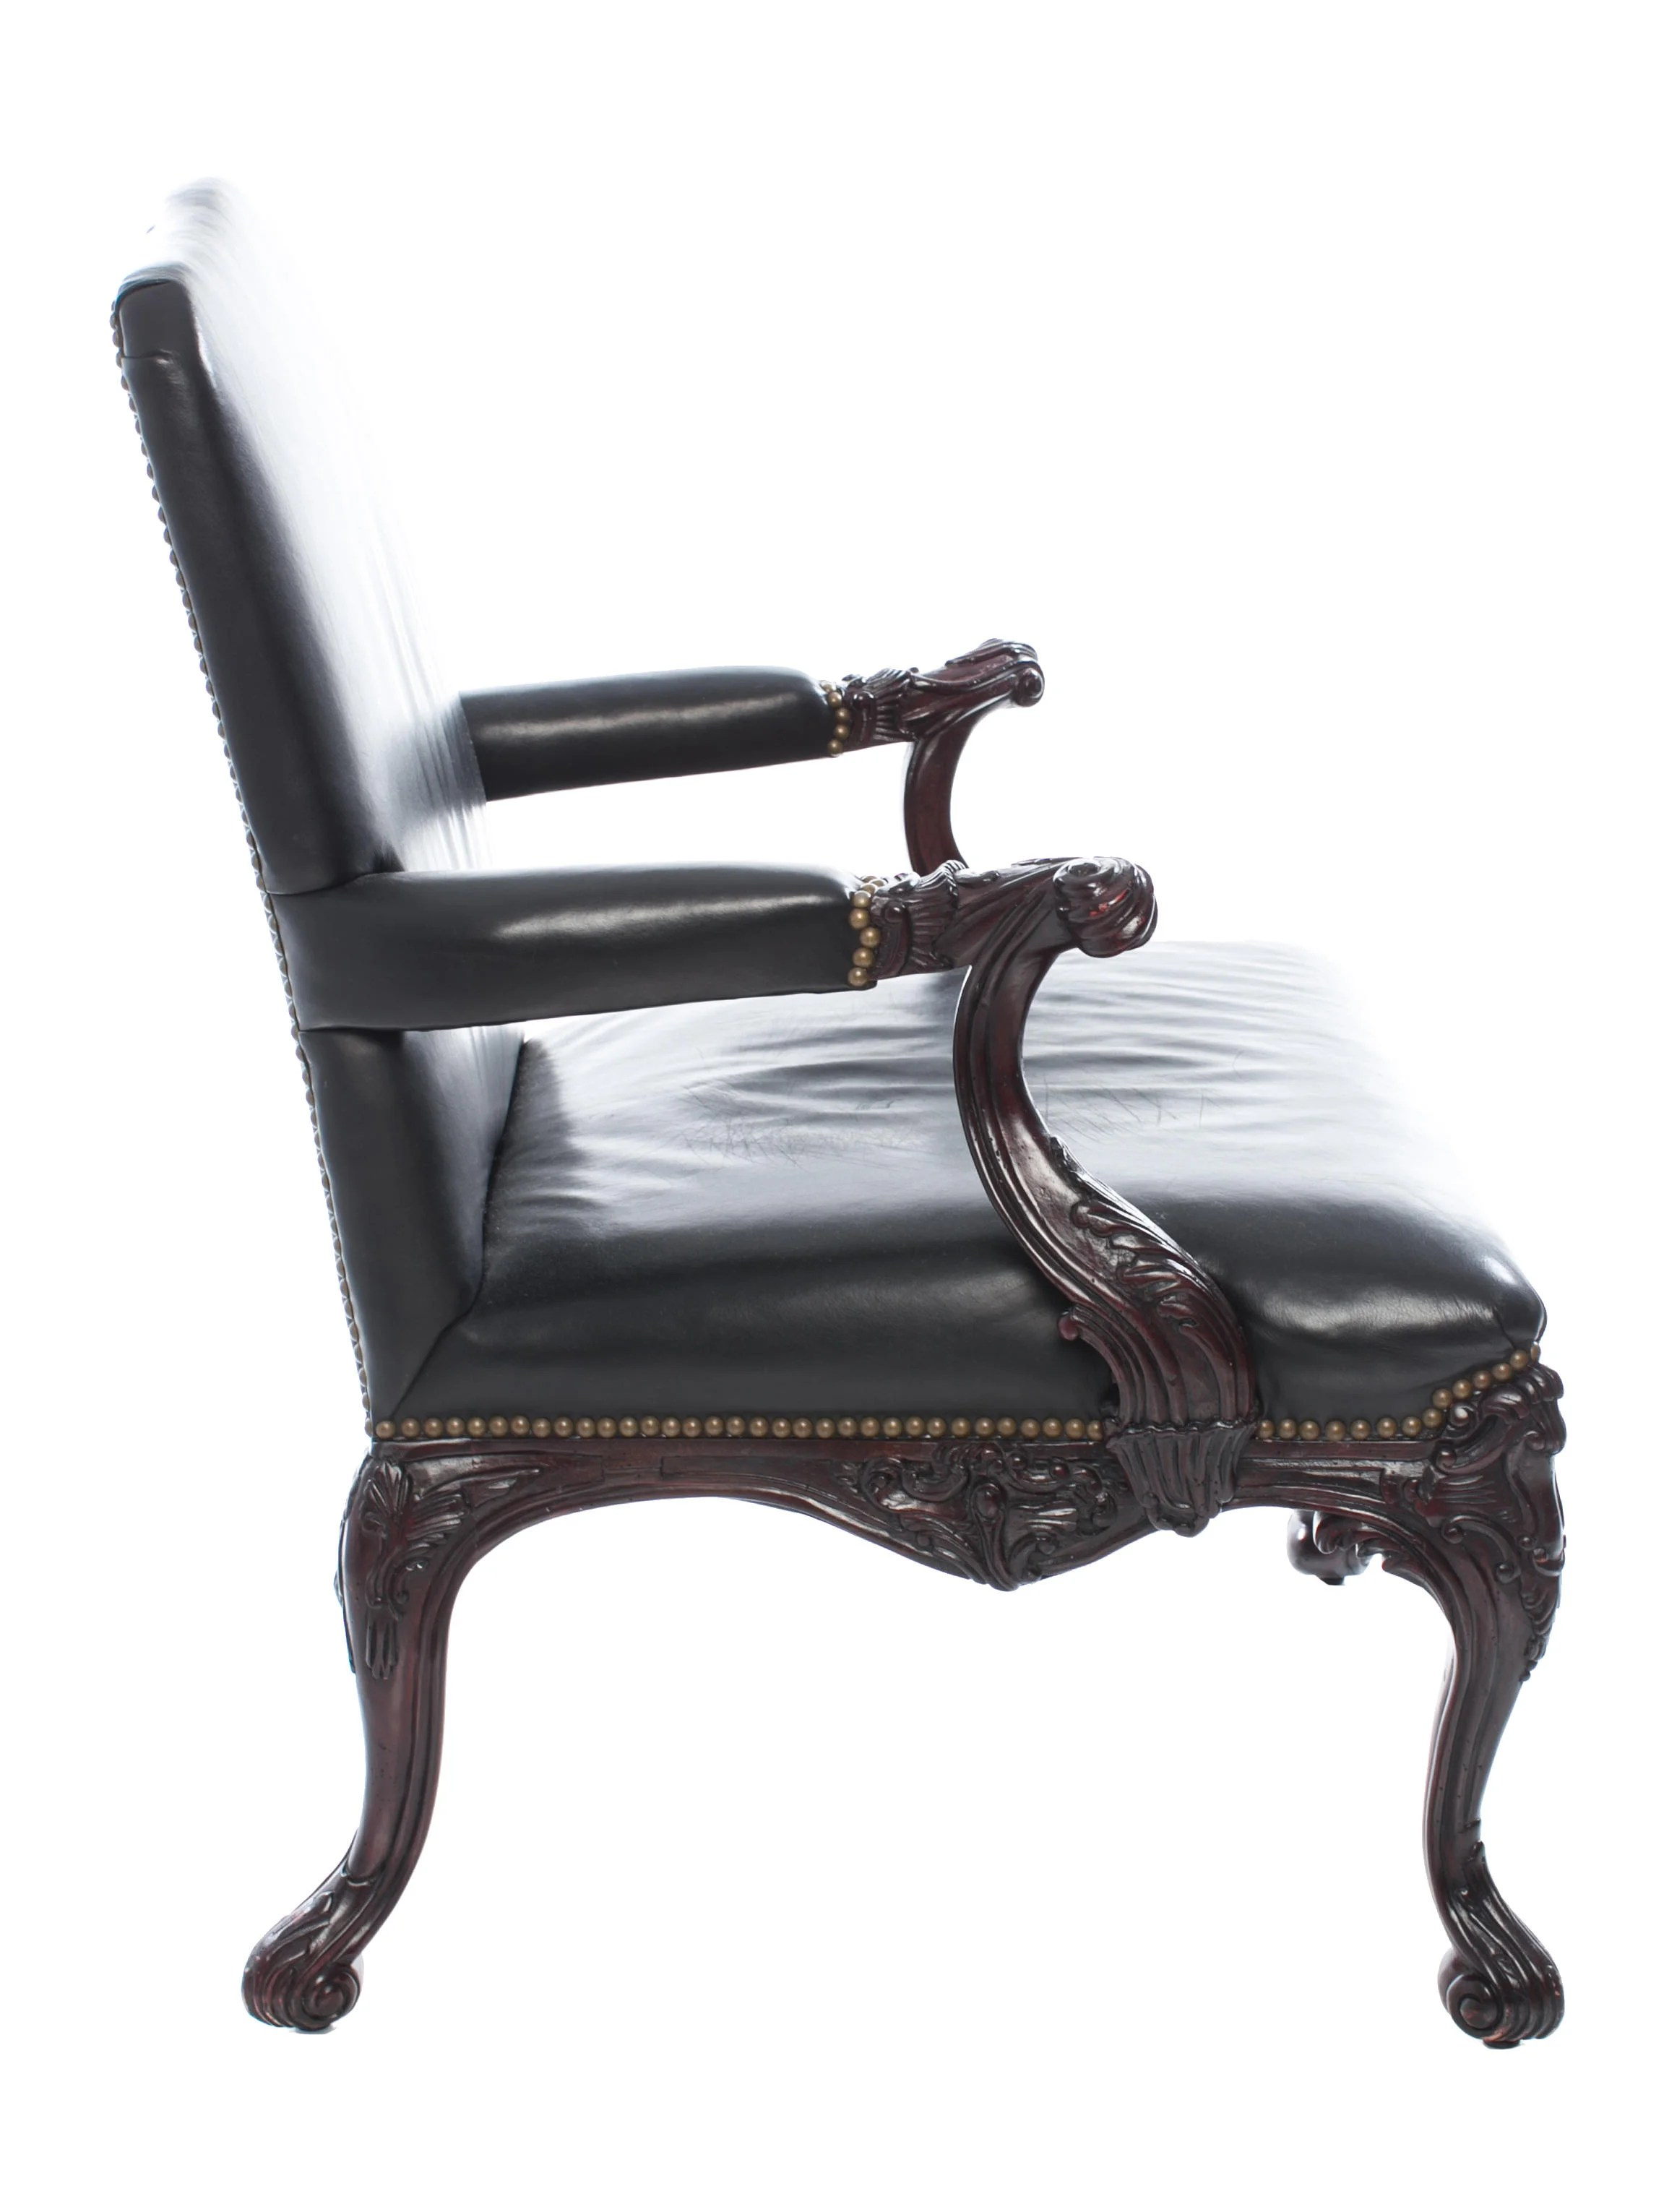 ralph lauren chair sure fit covers australia leather furniture wyg20260 the